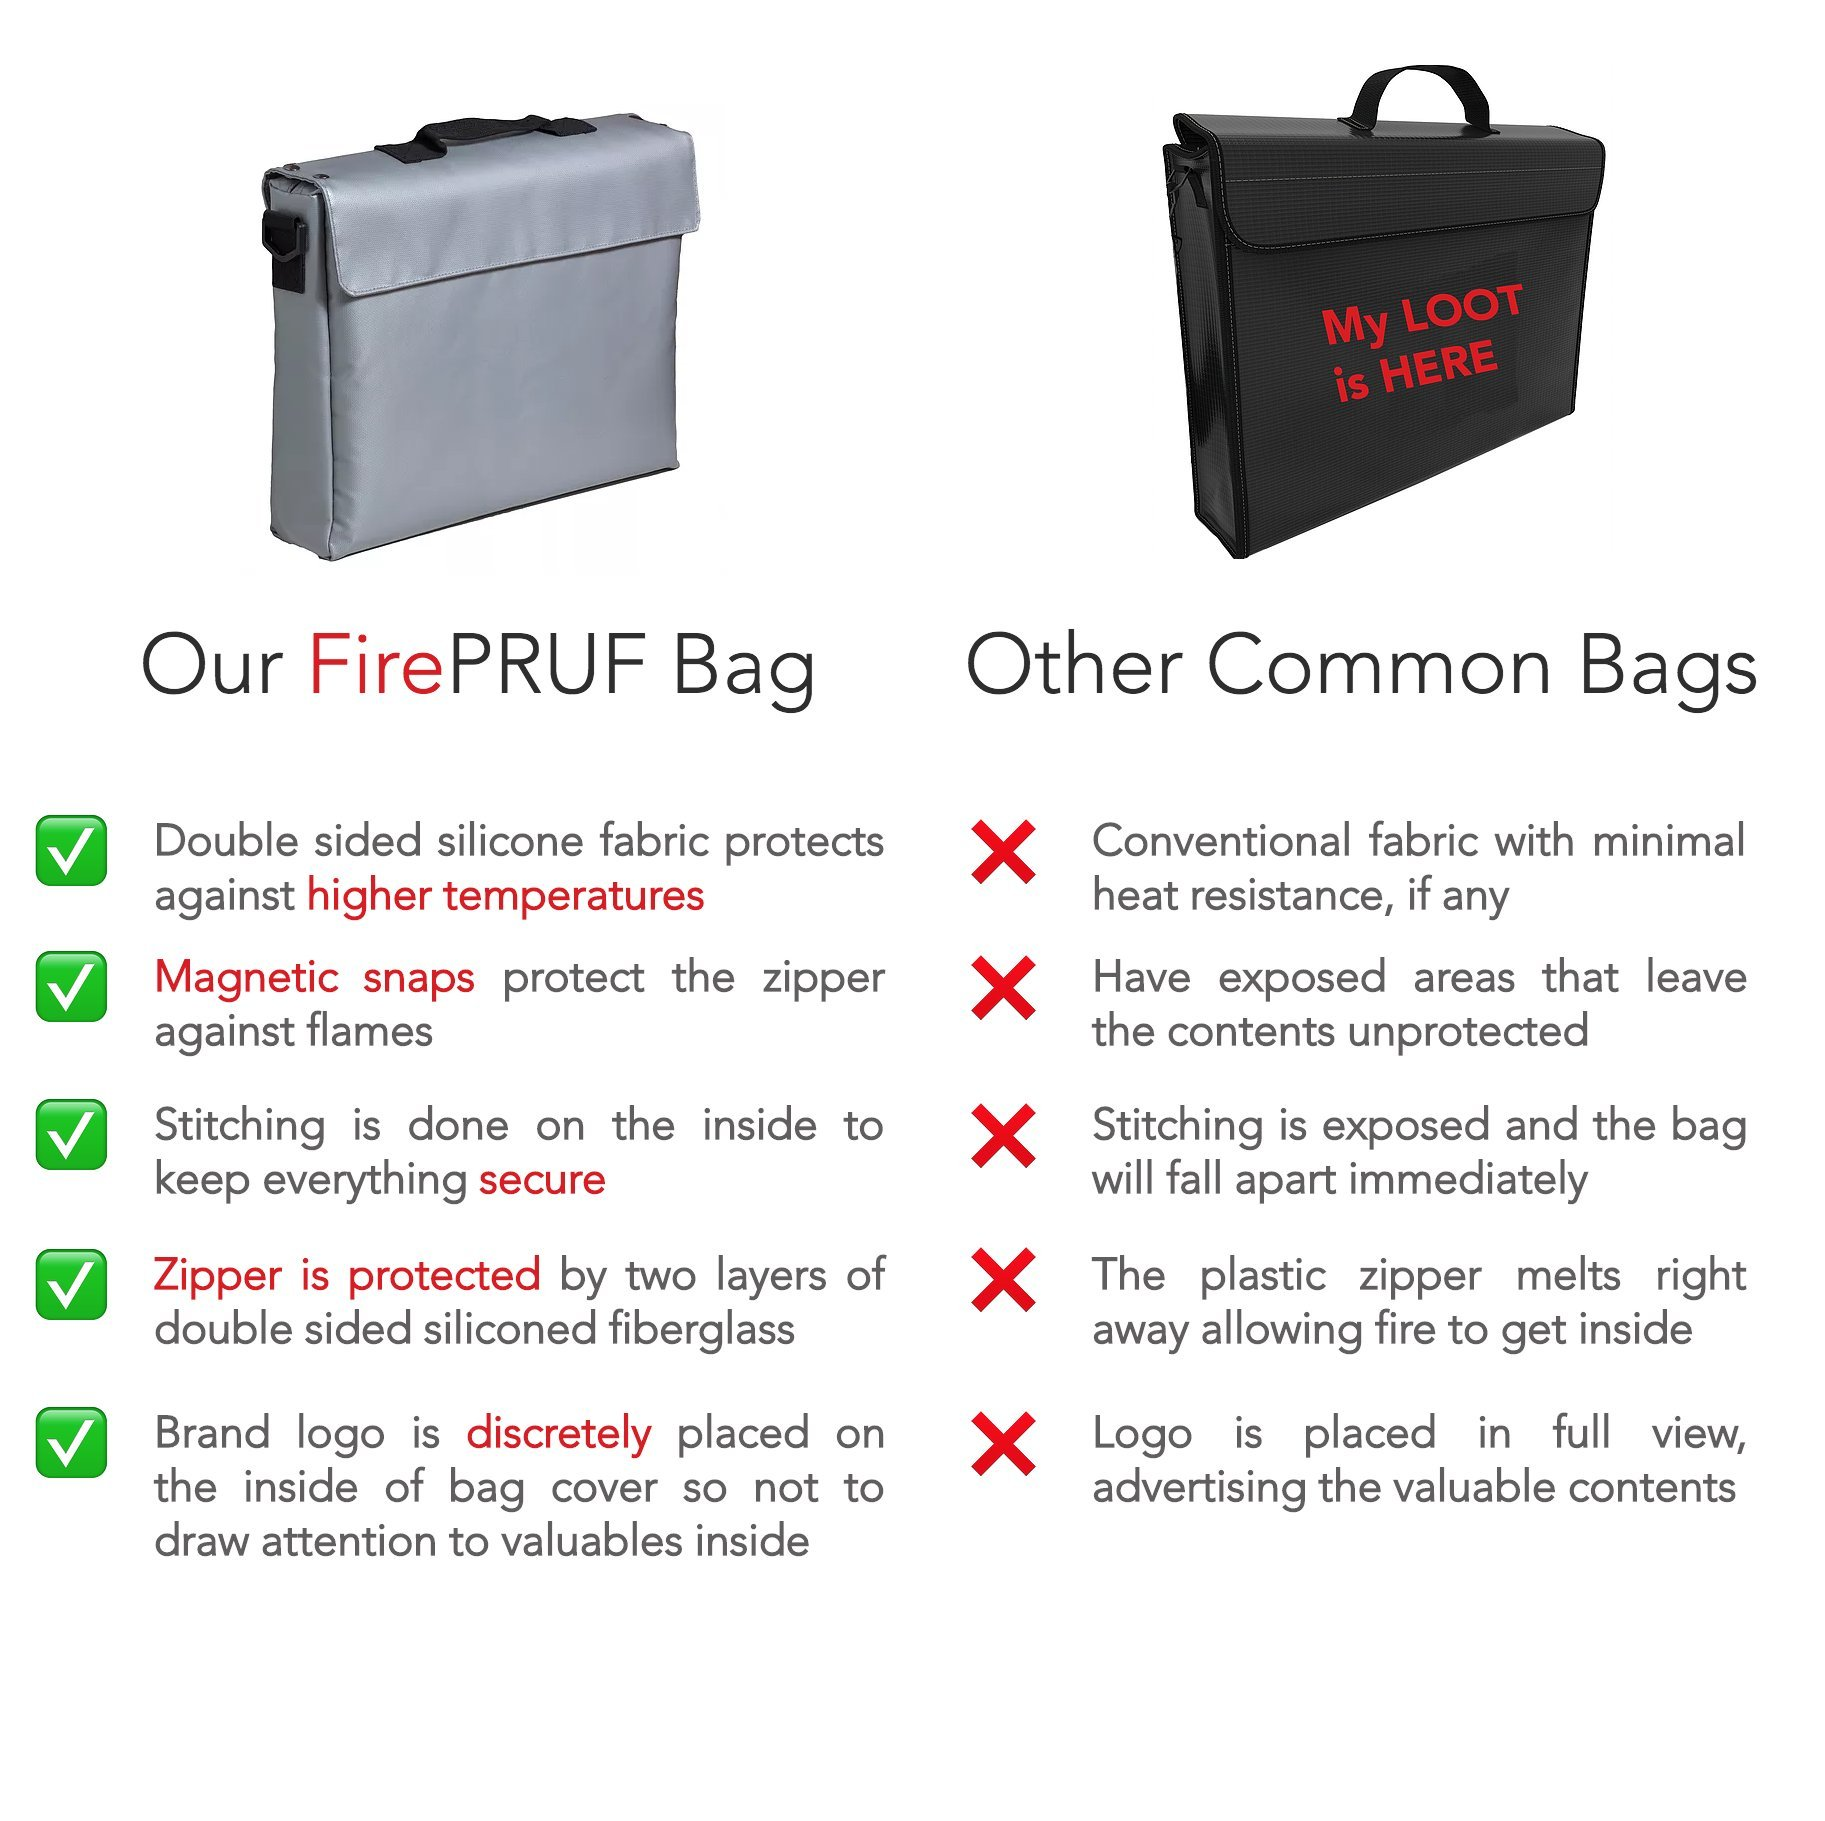 Certified Fireproof Bag for Documents, Money, Office Files & Memory Cards - Both Fire and Water Resistant, Ideal for Evacuation and Emergencies - 100% Fire Protected Zipper, Patent Pending by QIAYA (Image #2)